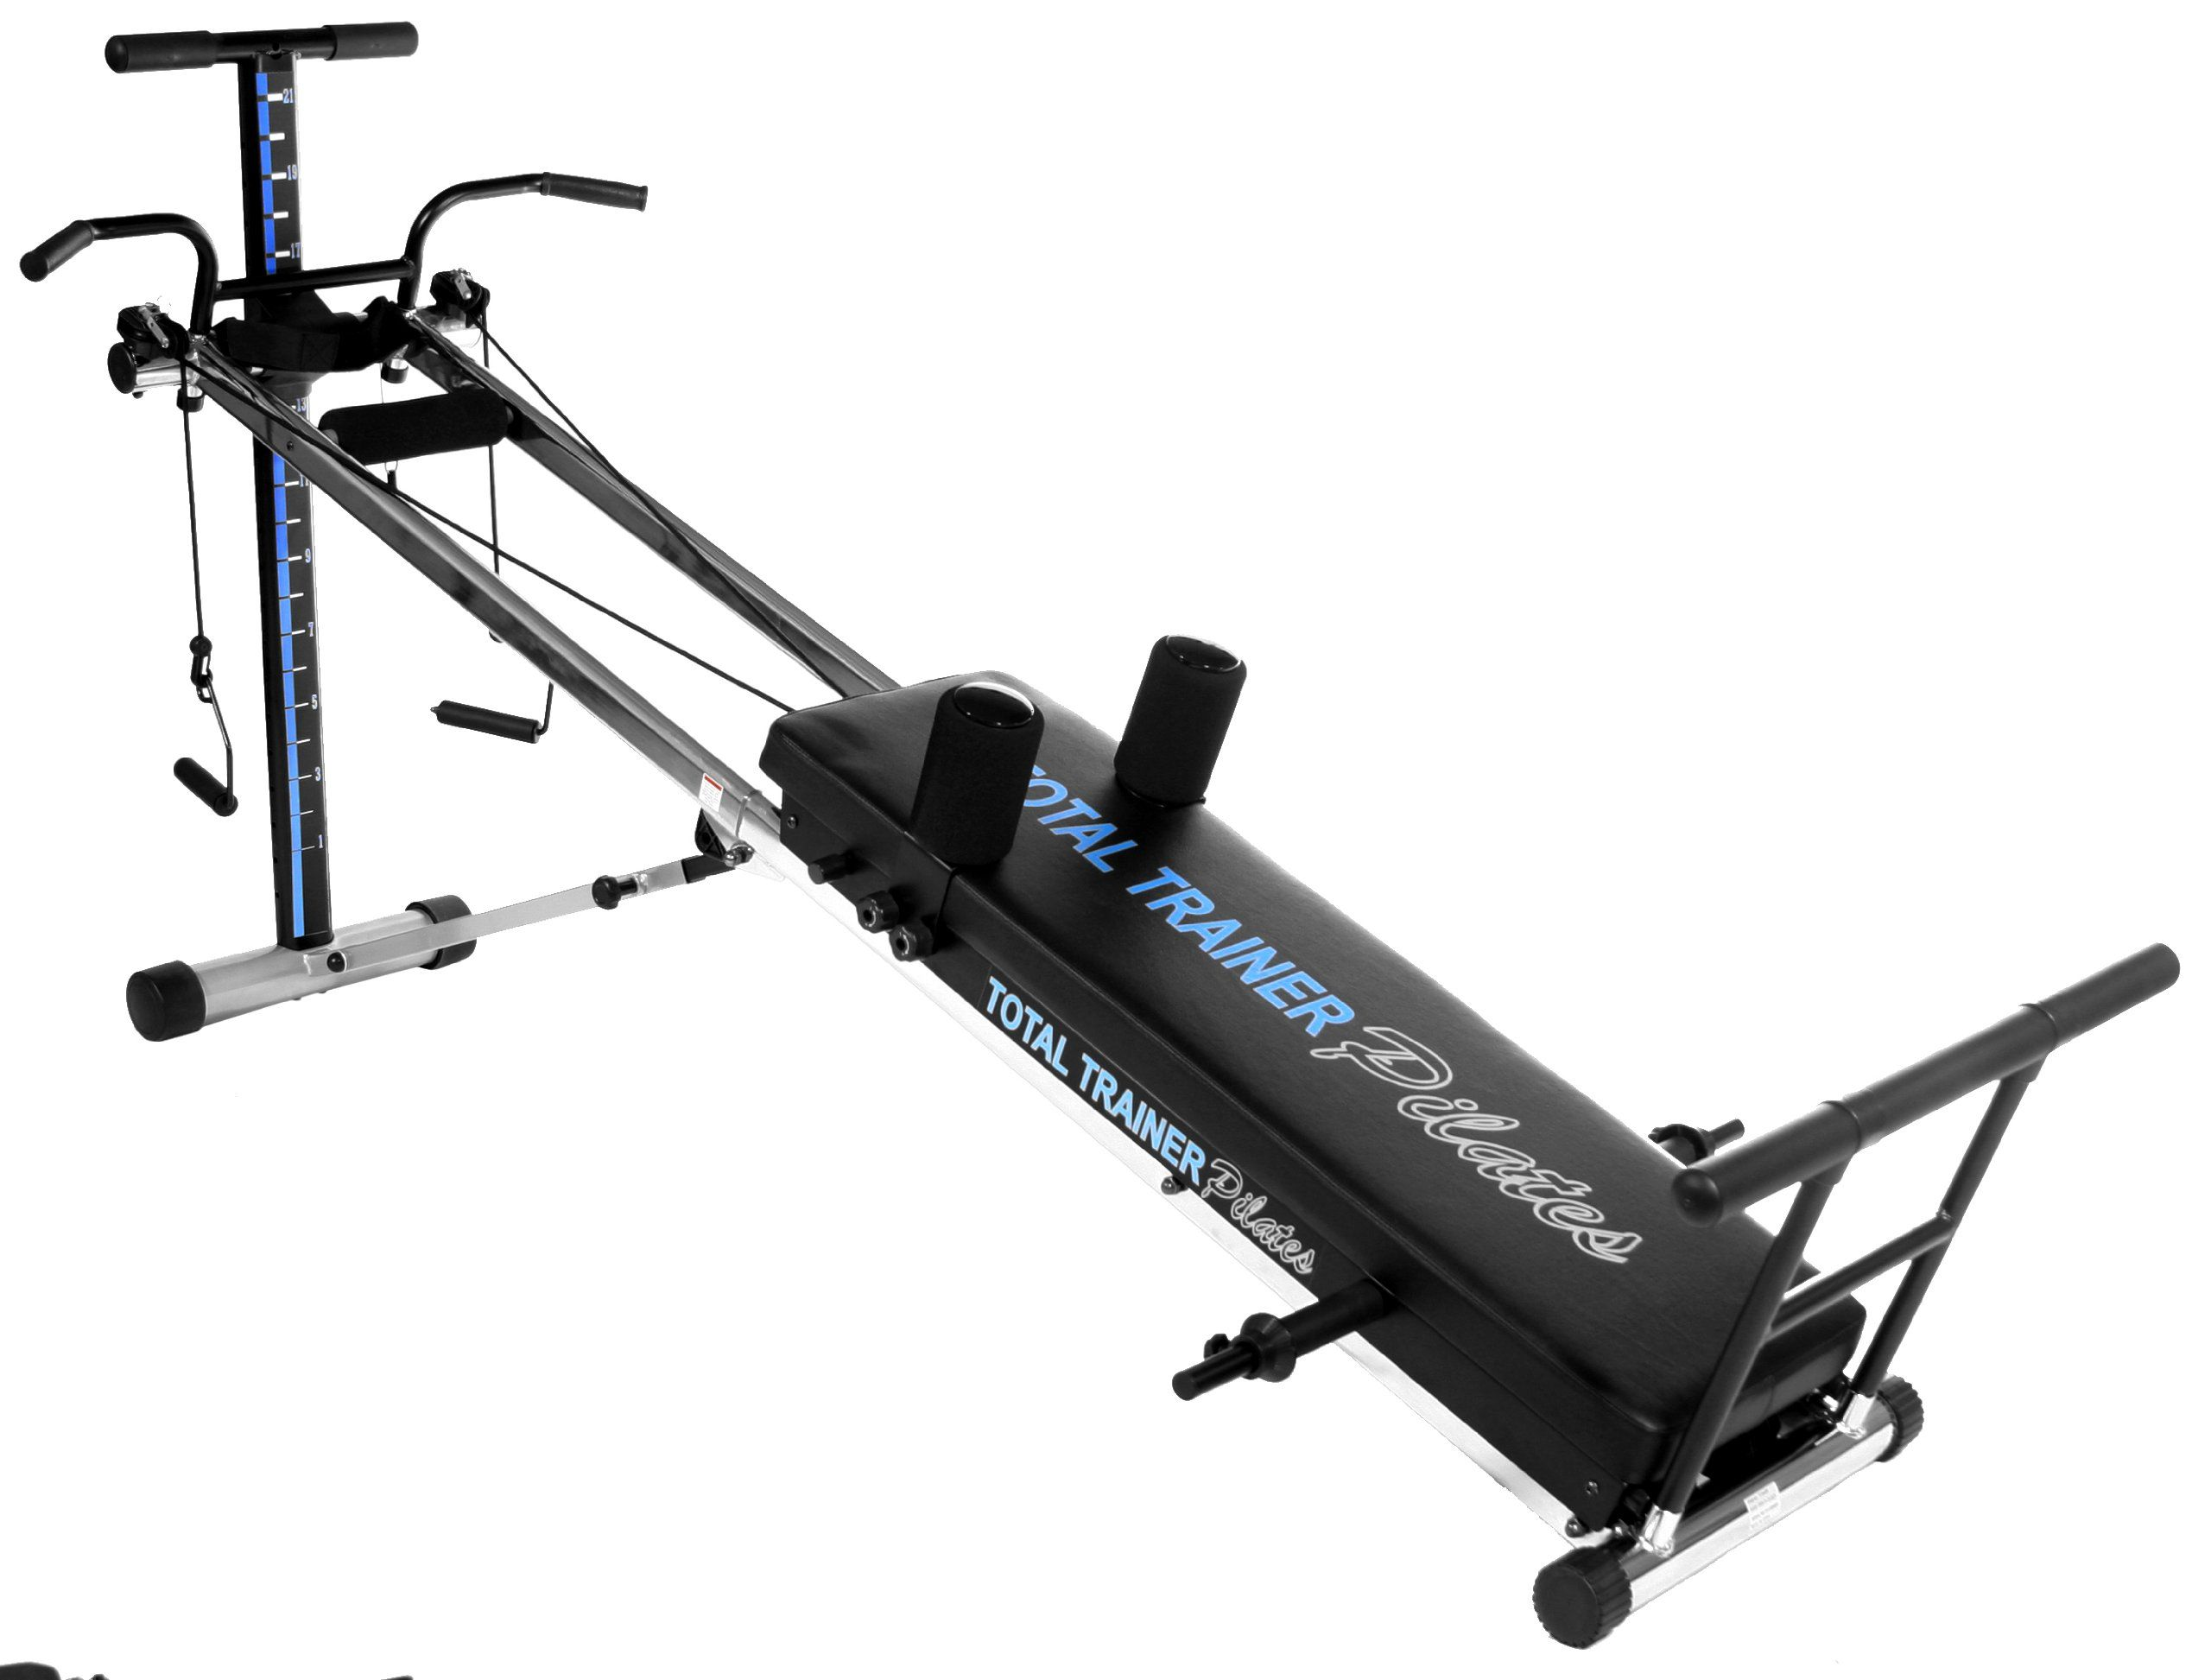 Bayou Fitness Total Trainer Pilates Pro Reformer Home Gym